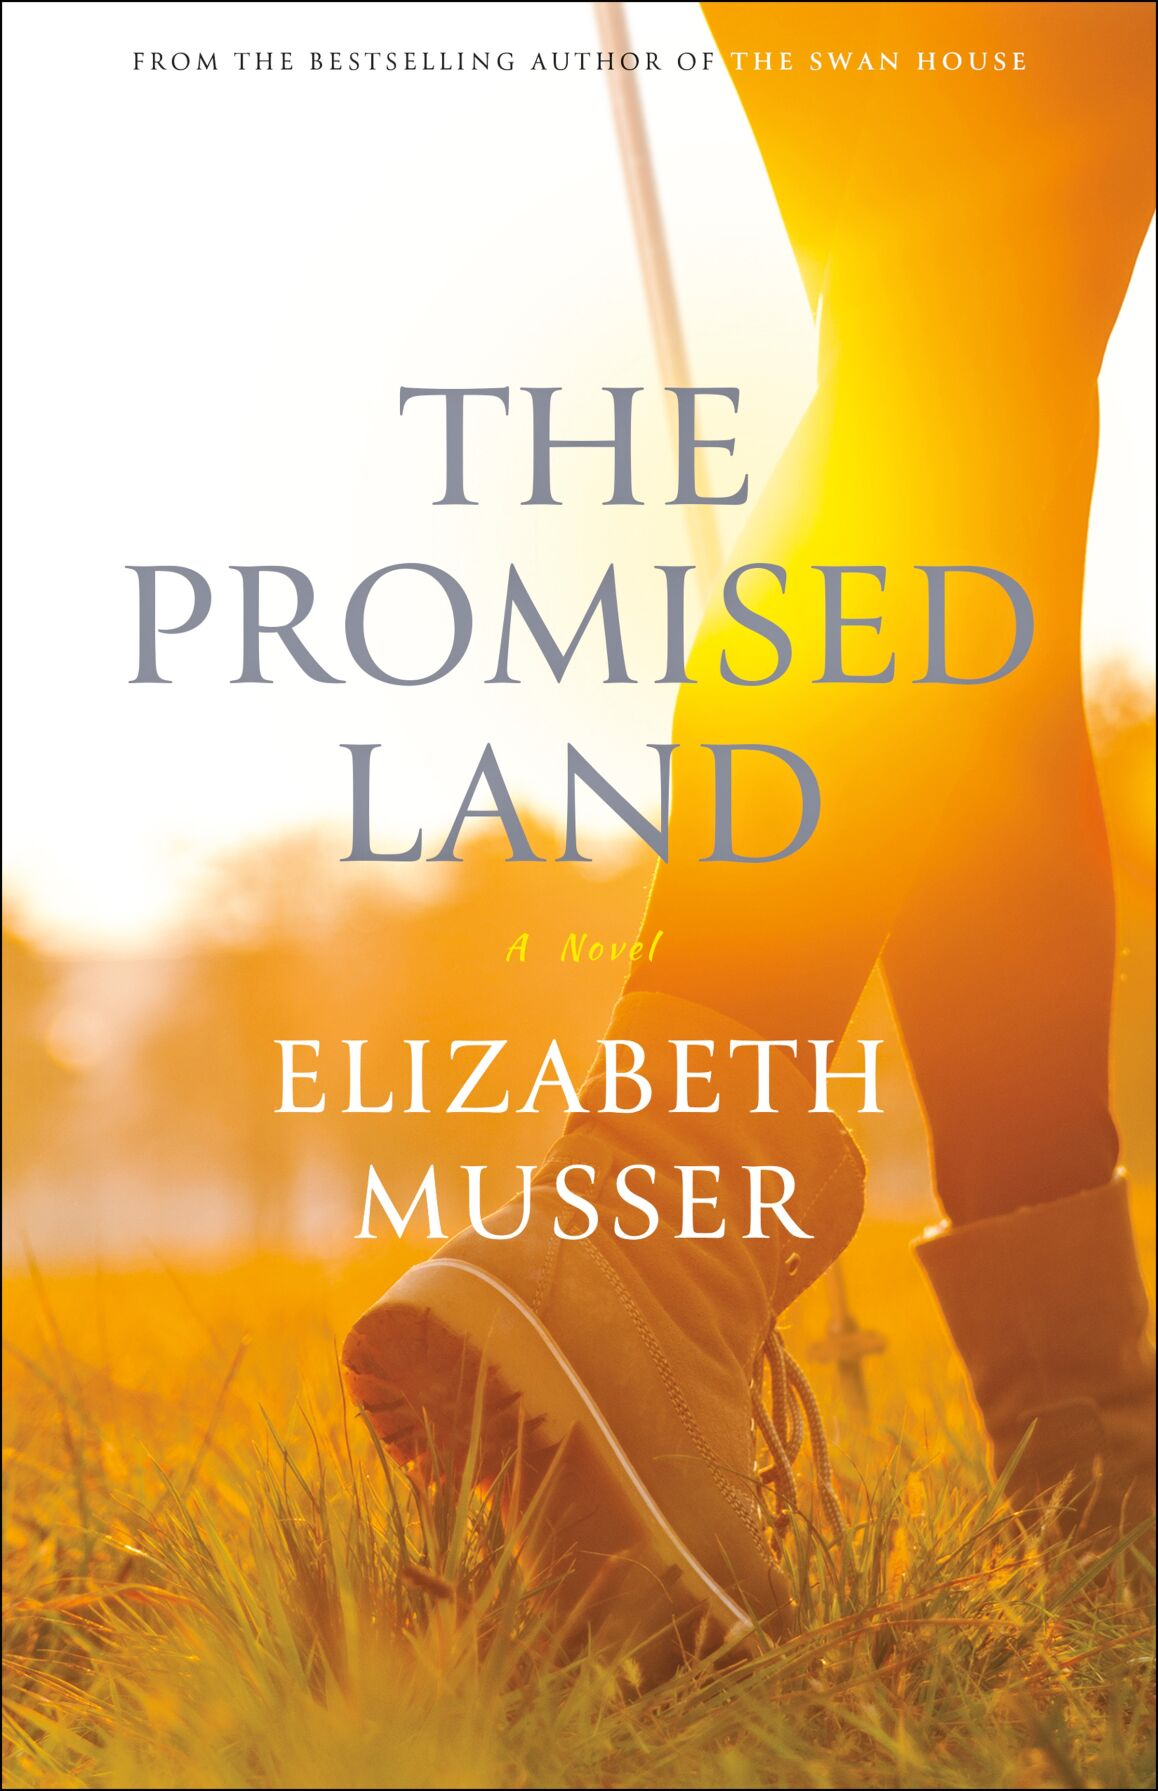 120220_MNS_Promised_Land The Promised Land cover